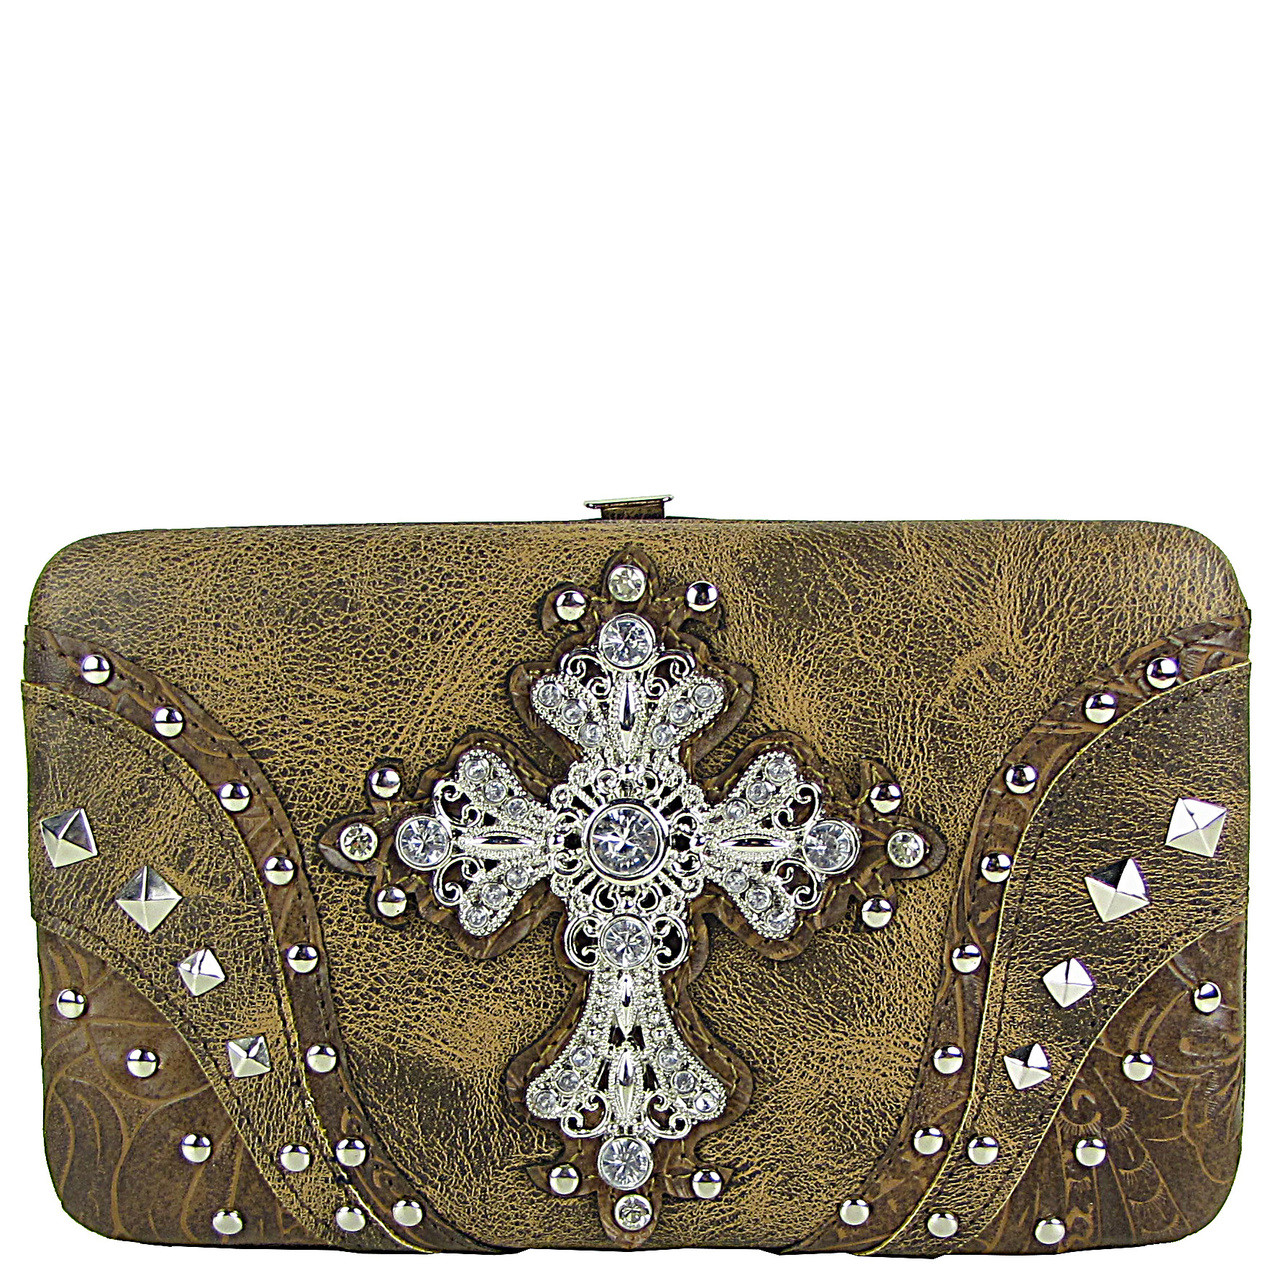 BROWN STUDDED RHINESTONE TOOLED CROSS LOOK FLAT THICK WALLET FW2-04120BRN